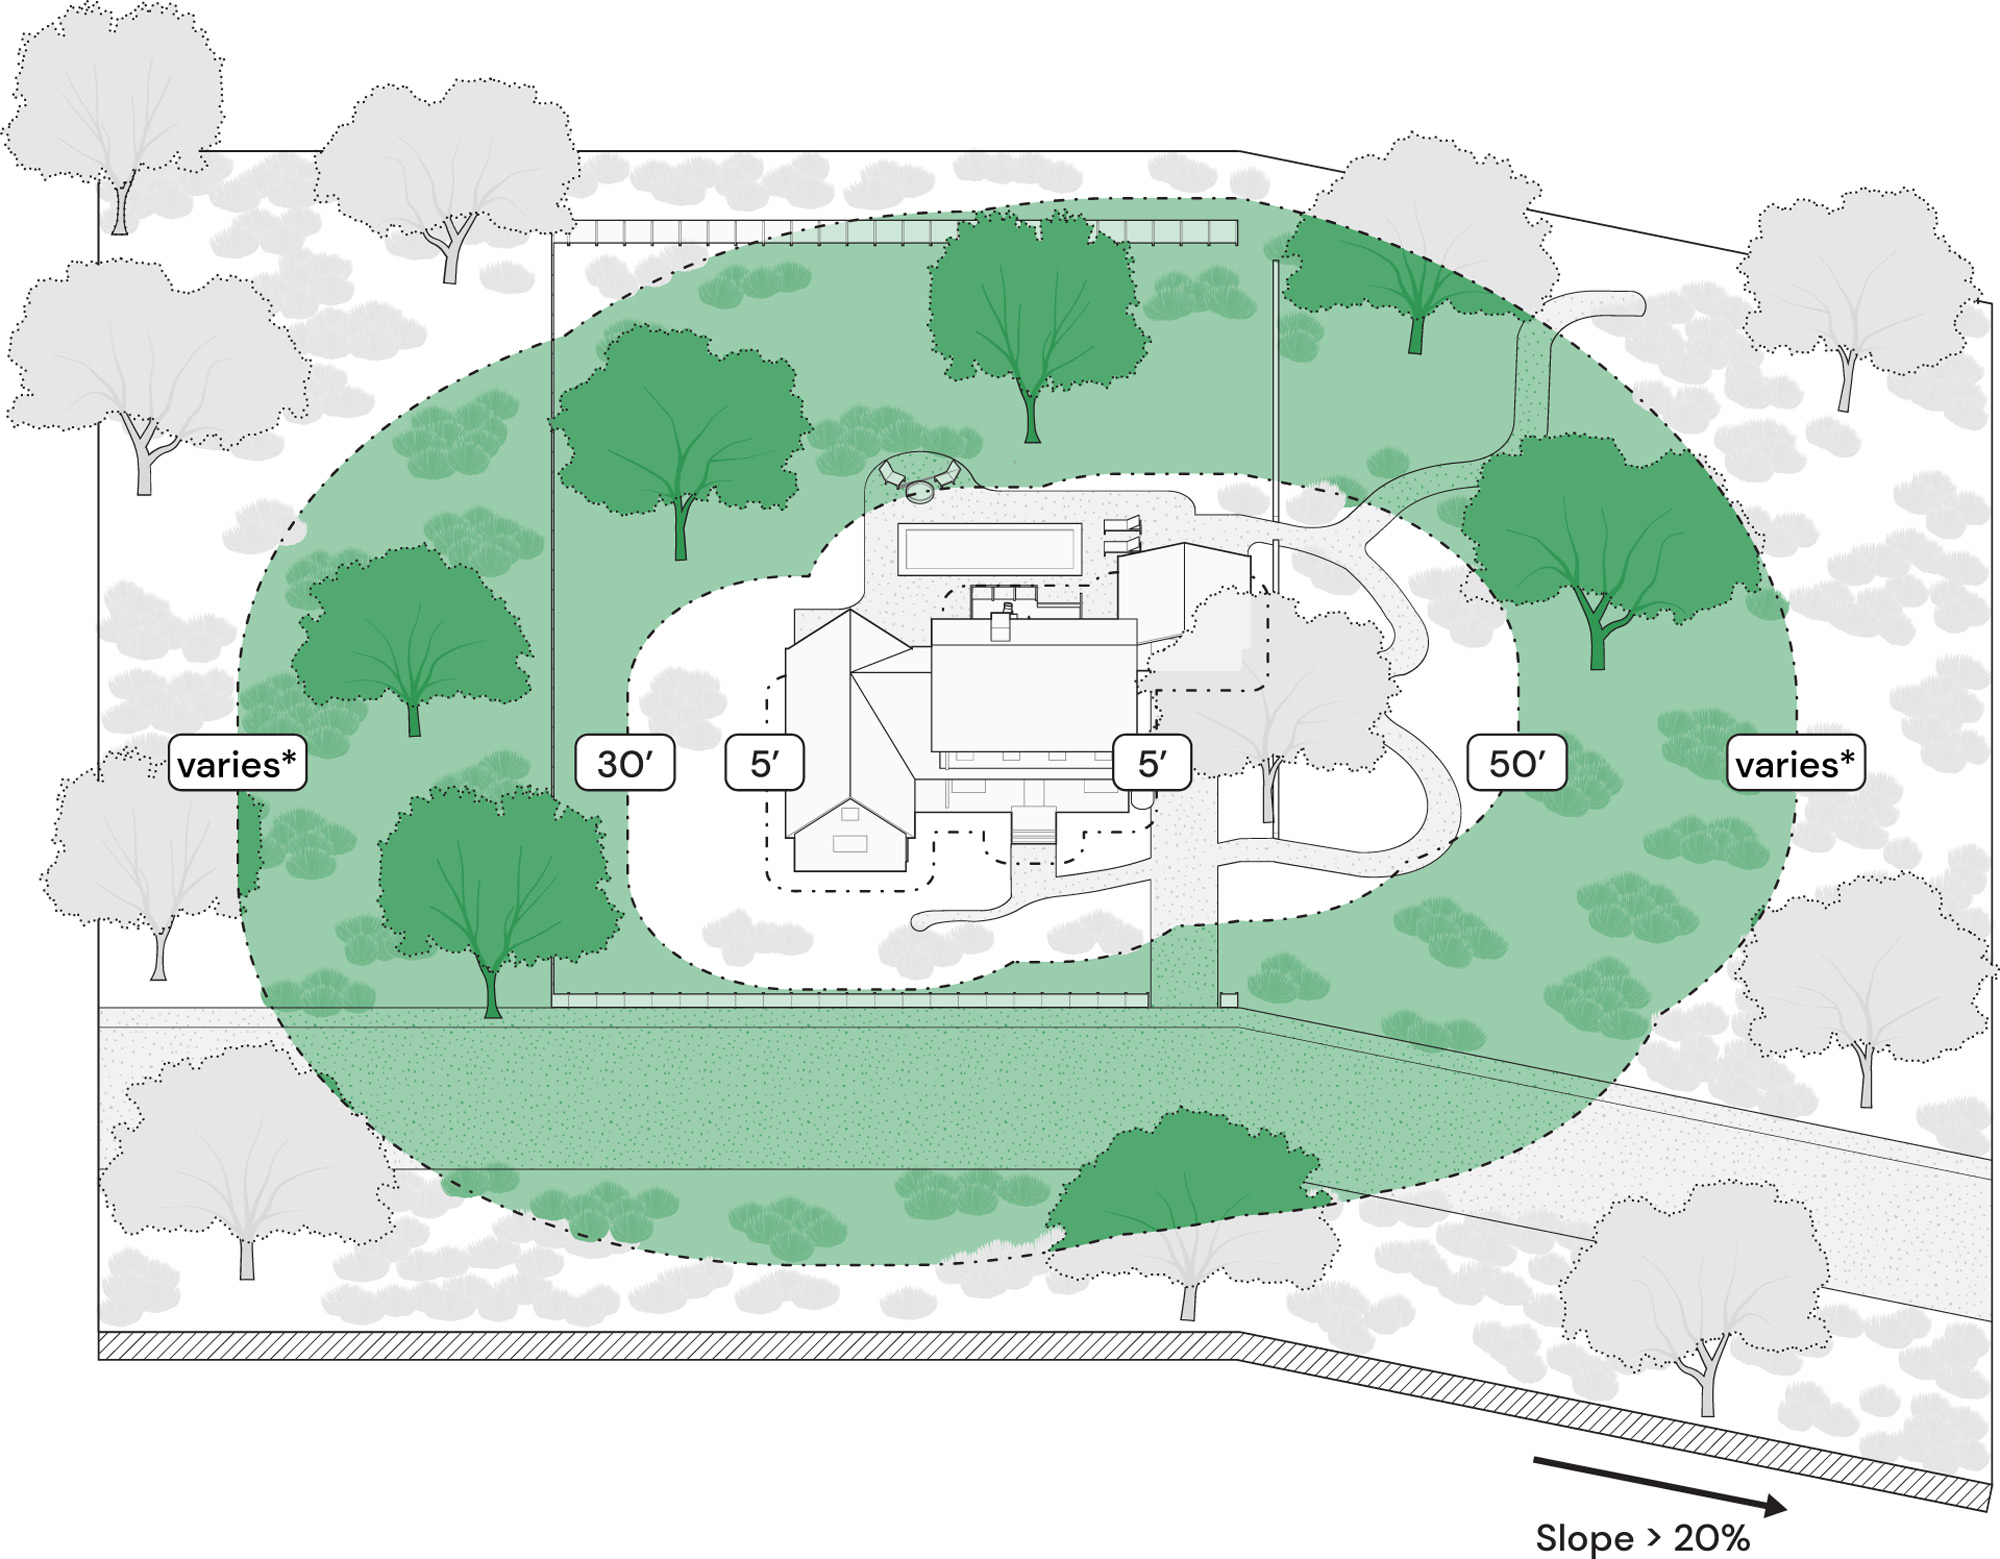 a diagram for fire wise-landscaping